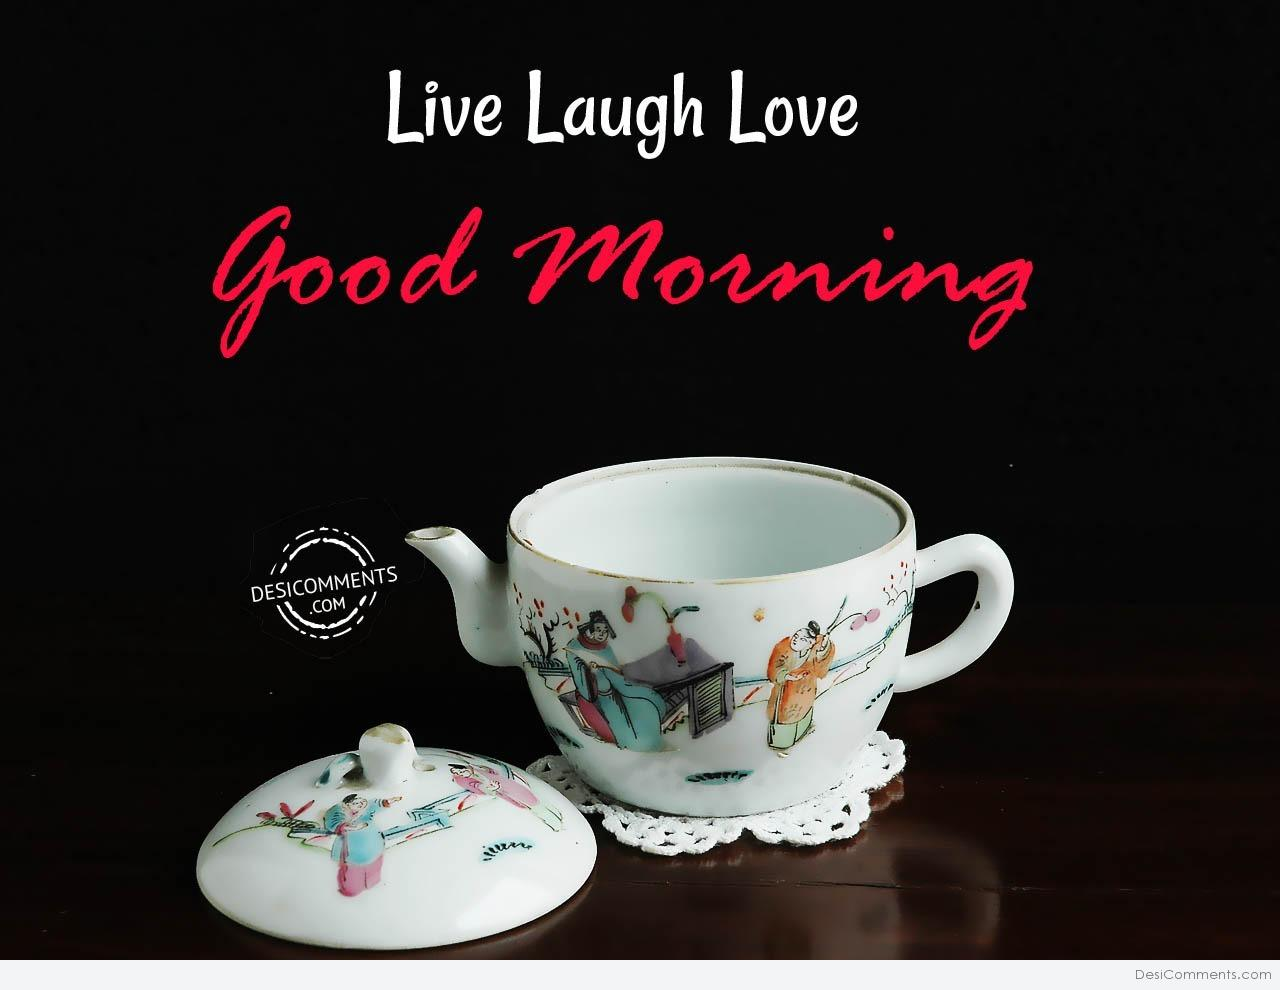 Live Laugh Love Good Morning Desicommentscom